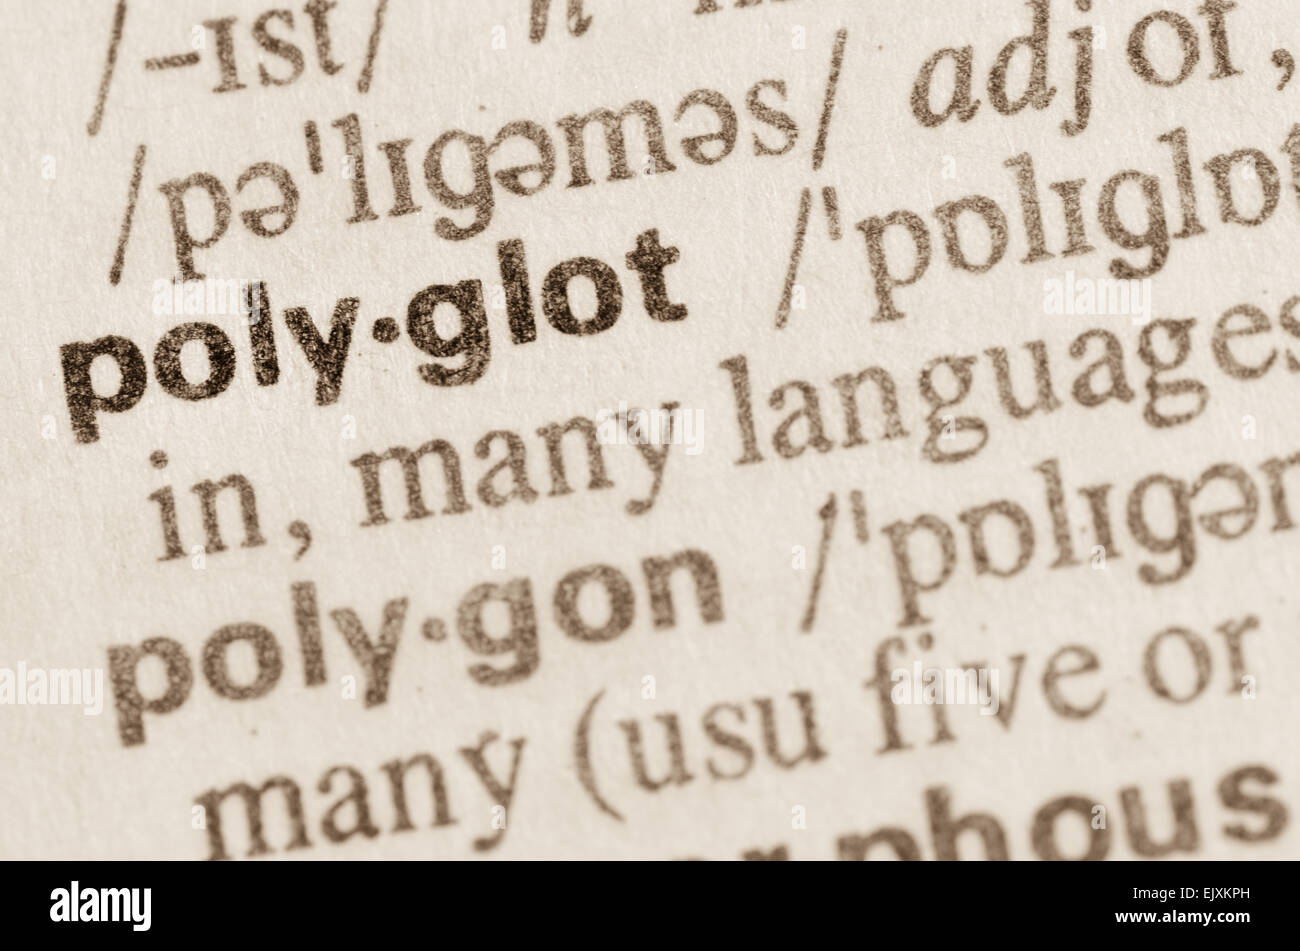 Definition of word polyglot in dictionary - Stock Image